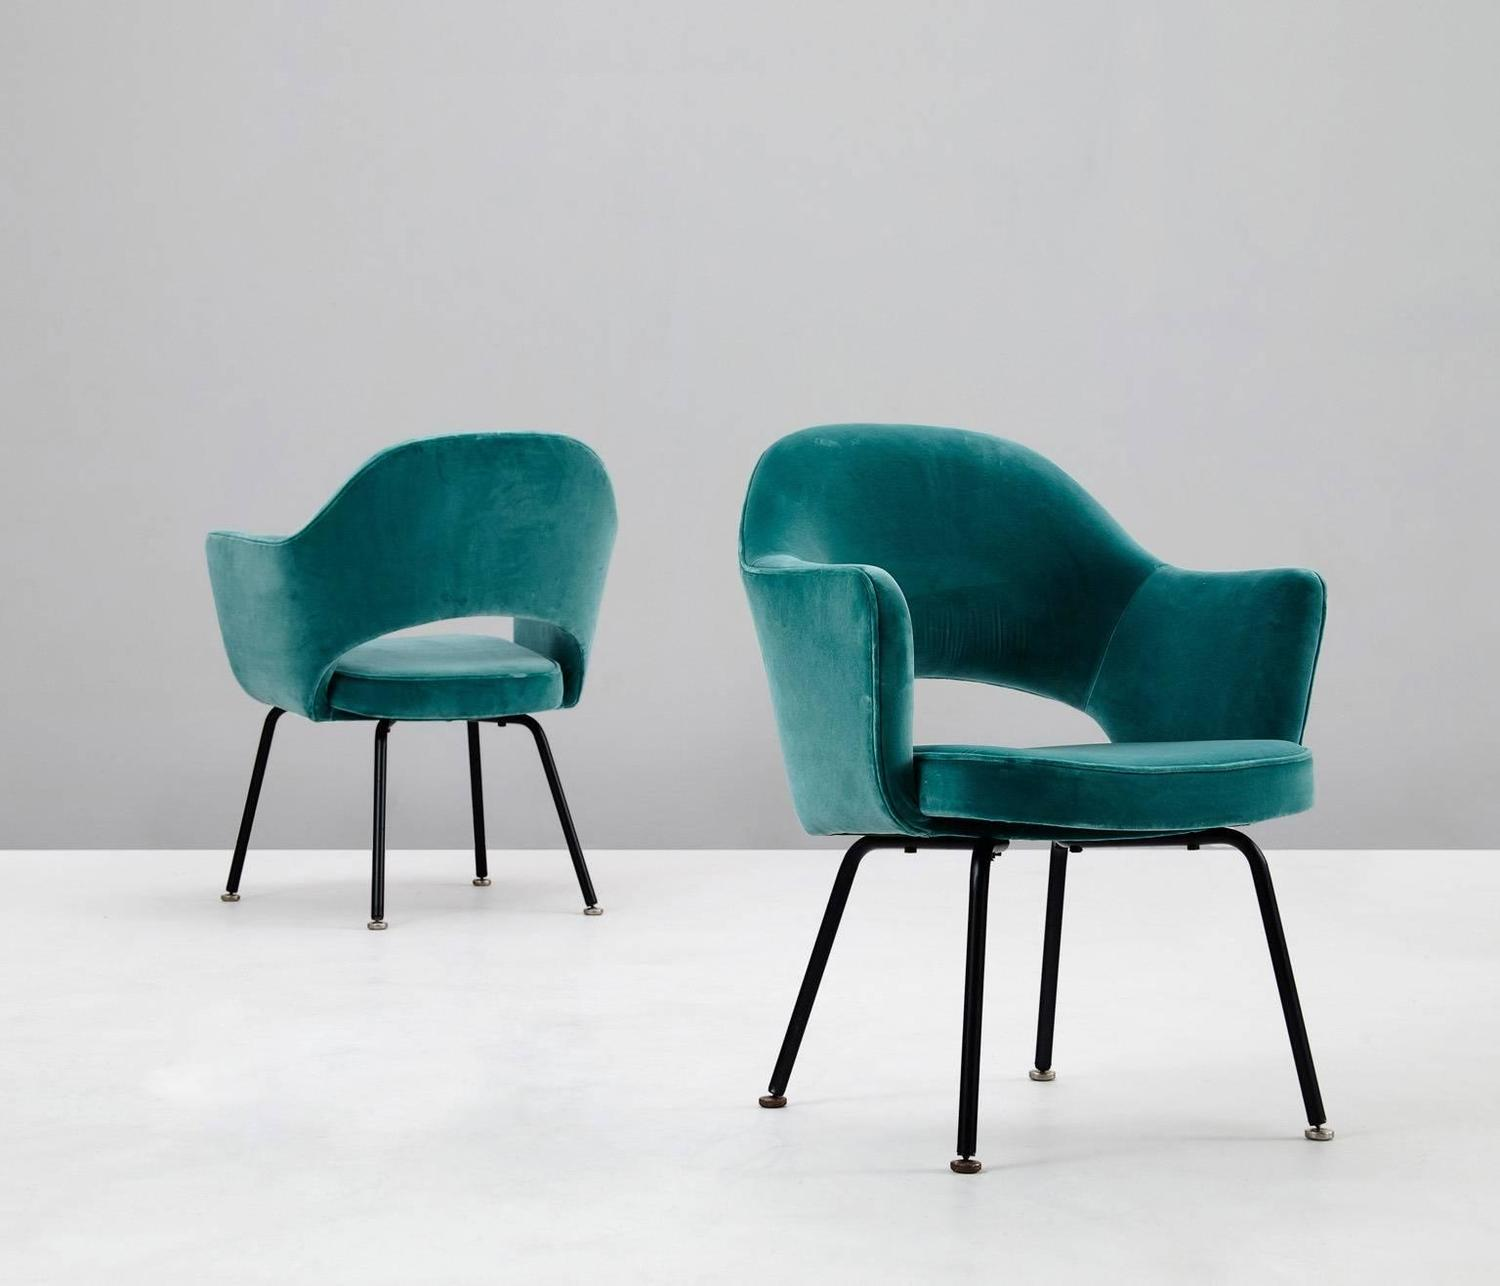 conference chairs for sale ps3 gaming chair eero saarinen reupholstered knoll